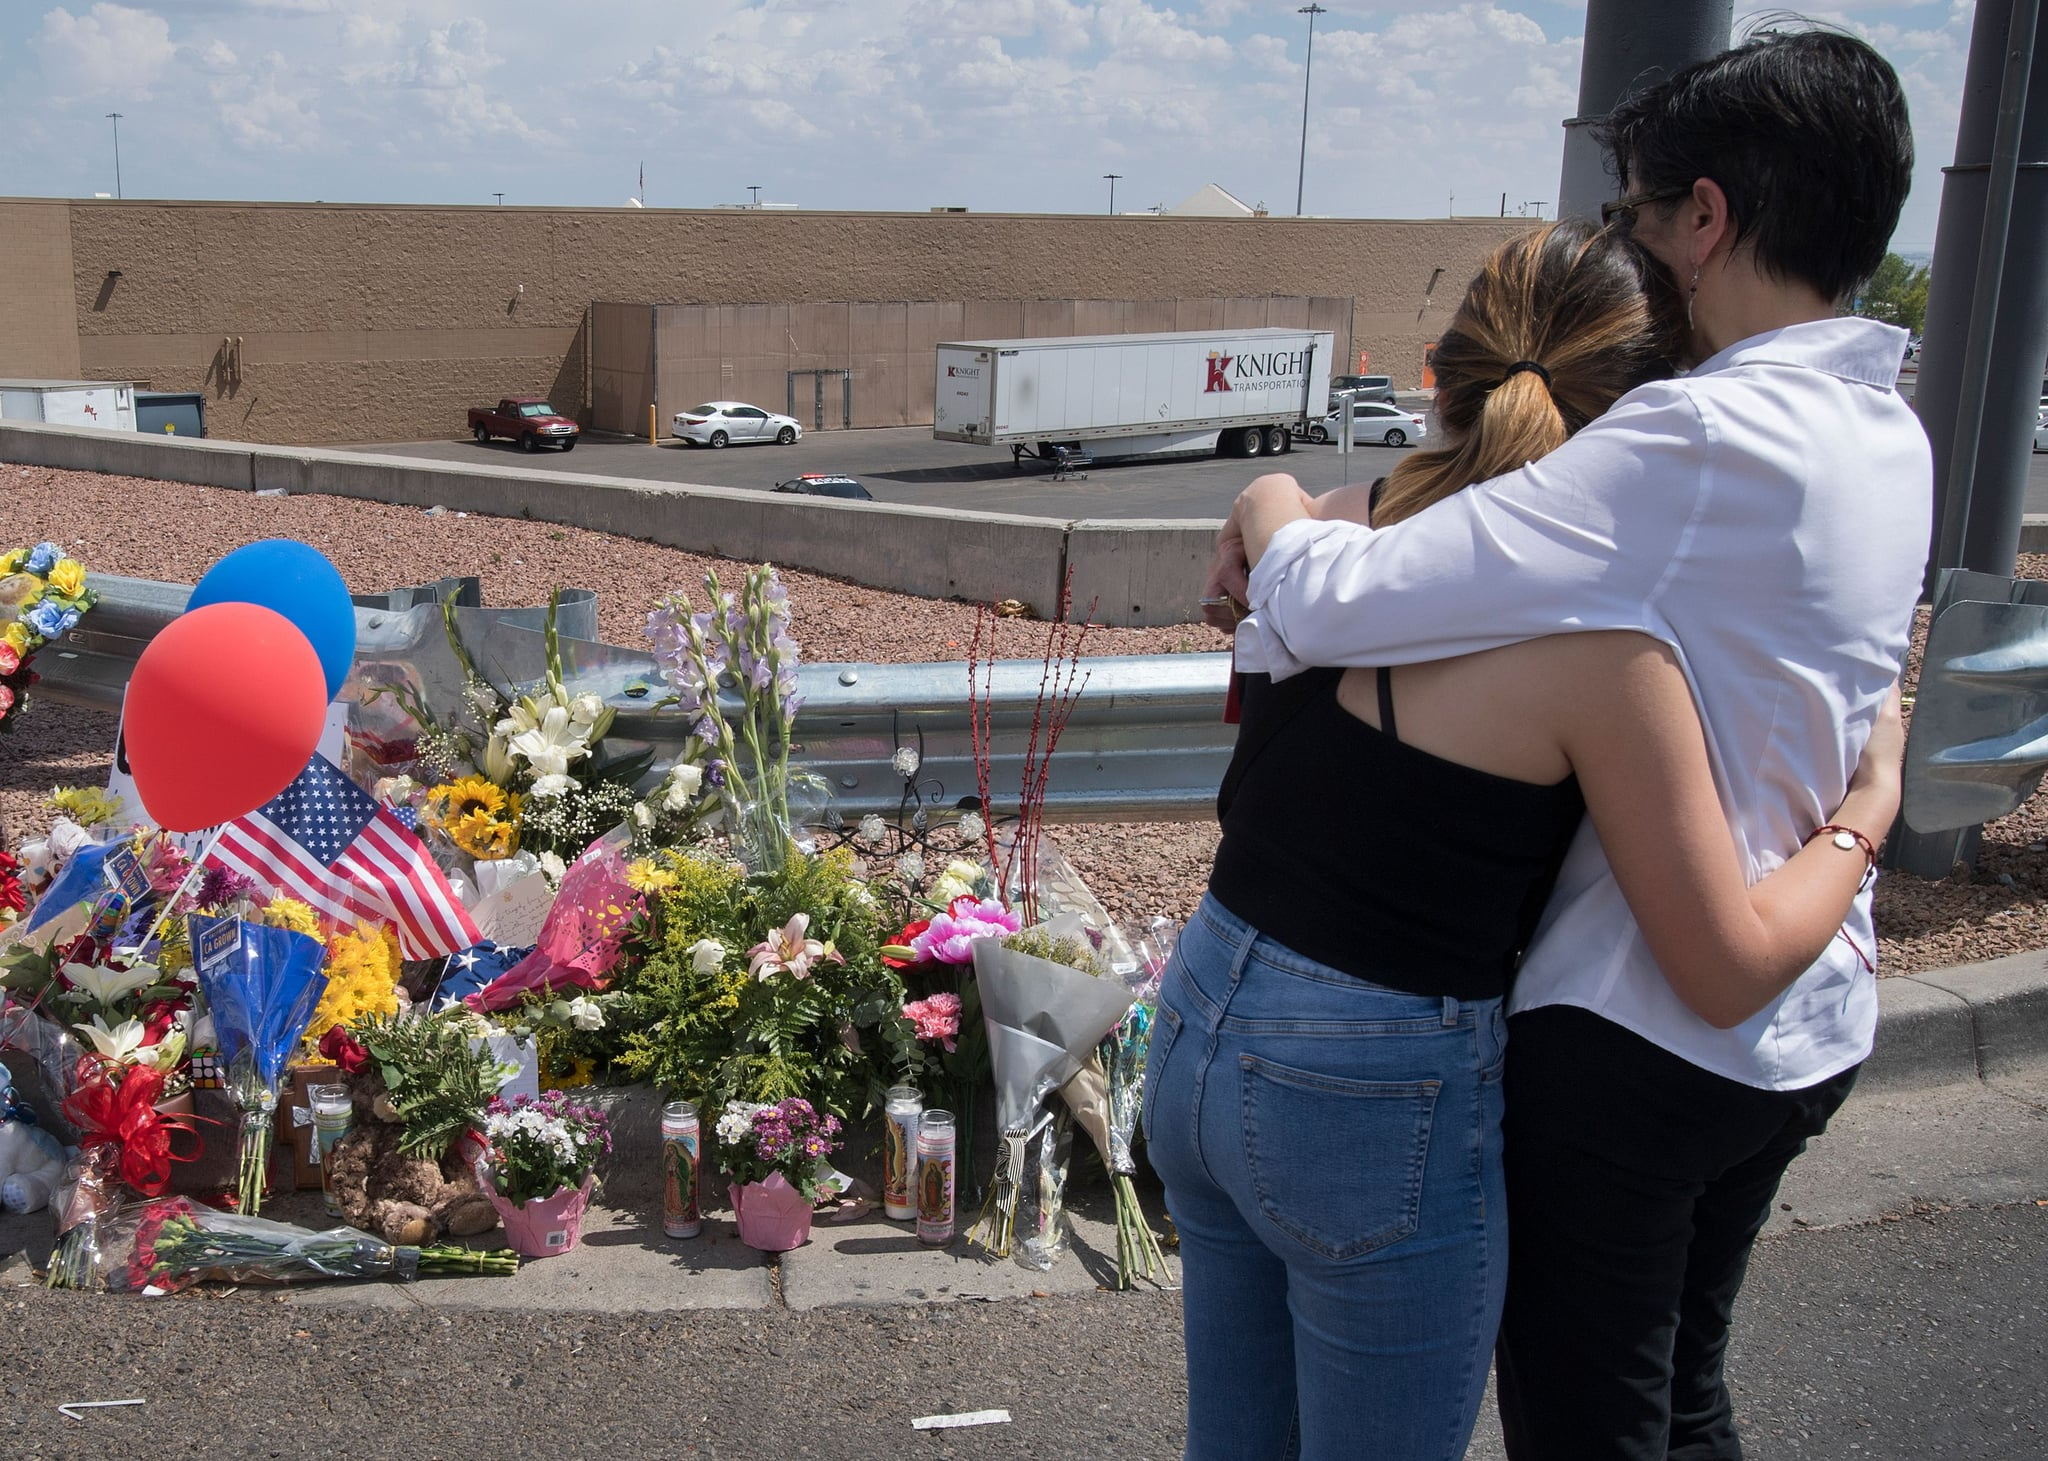 People hug beside a makeshift memorial outside the Cielo Vista Mall Wal-Mart (background) where a shooting left 20 people dead in El Paso, Texas, on August 4, 2019. - Texas authorities are investigating the Saturday mass shooting at a Walmart store in El Paso as a possible hate crime, the city's police chief said, as authorities study an online manifesto linked to the suspect. A 21-year-old from Allen, a suburb of Dallas, surrendered to police outside the store after the rampage that left 20 people dead and 26 wounded.US media identified him as Patrick Crusius, who is white, and linked him to a